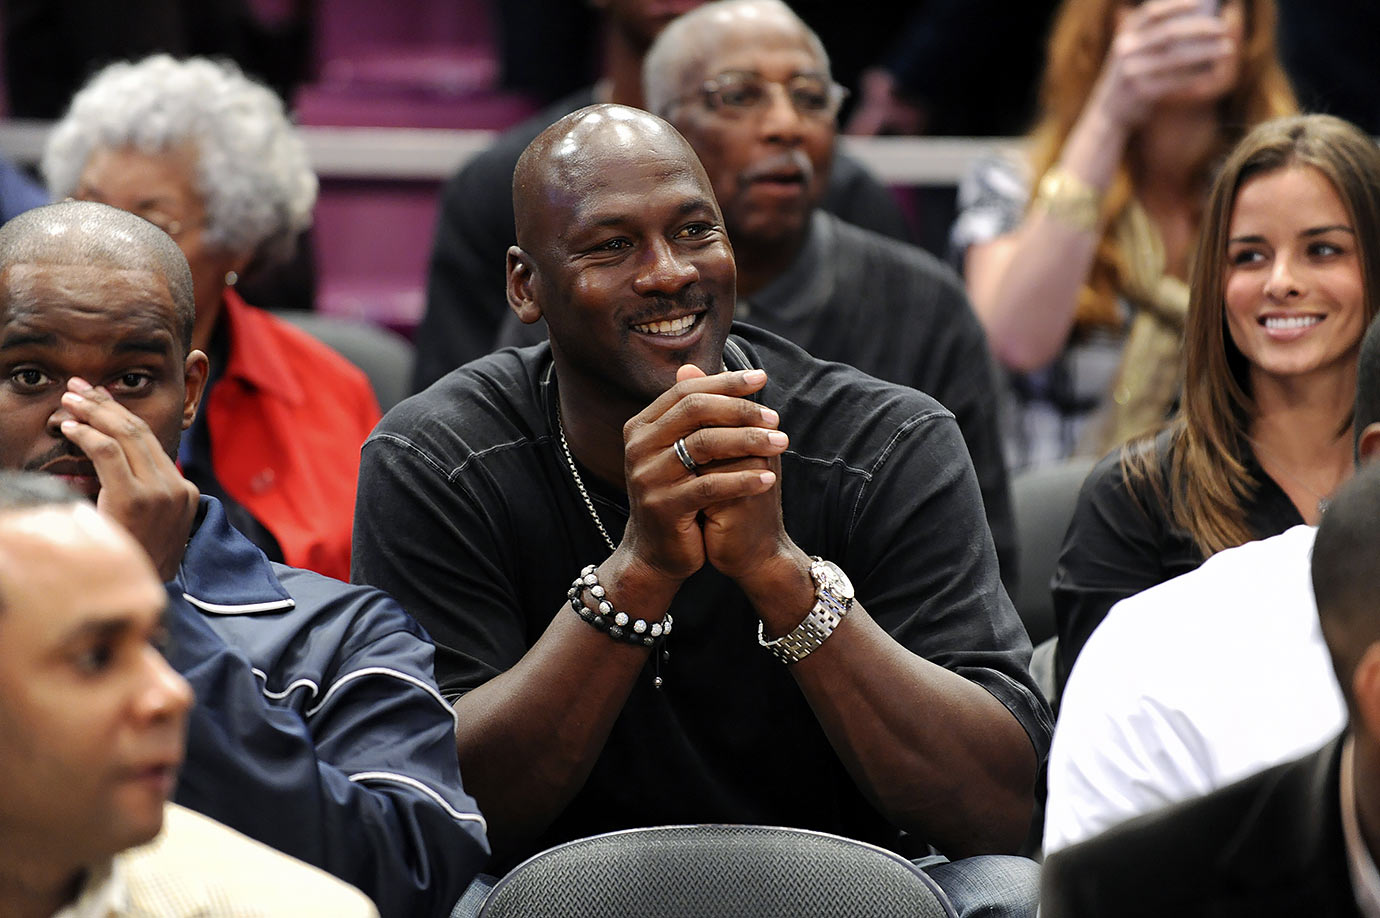 Michael Jordan smiles in the stands during the 2009 Jordan Brand Classic High School All-American Game at Madison Square Garden.